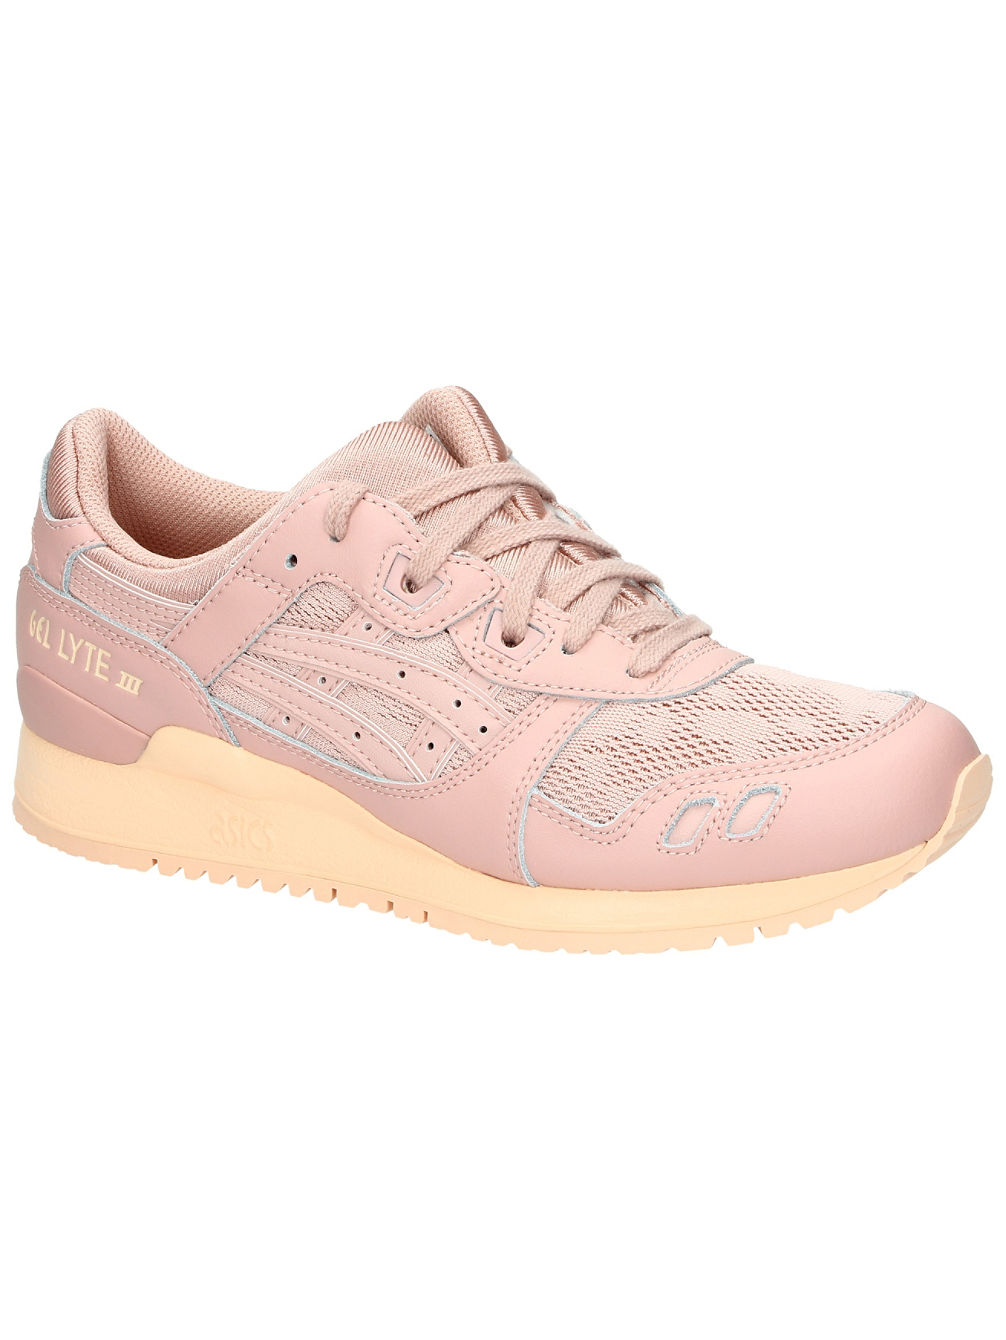 Gel-Lyte III Sneakers Frauen